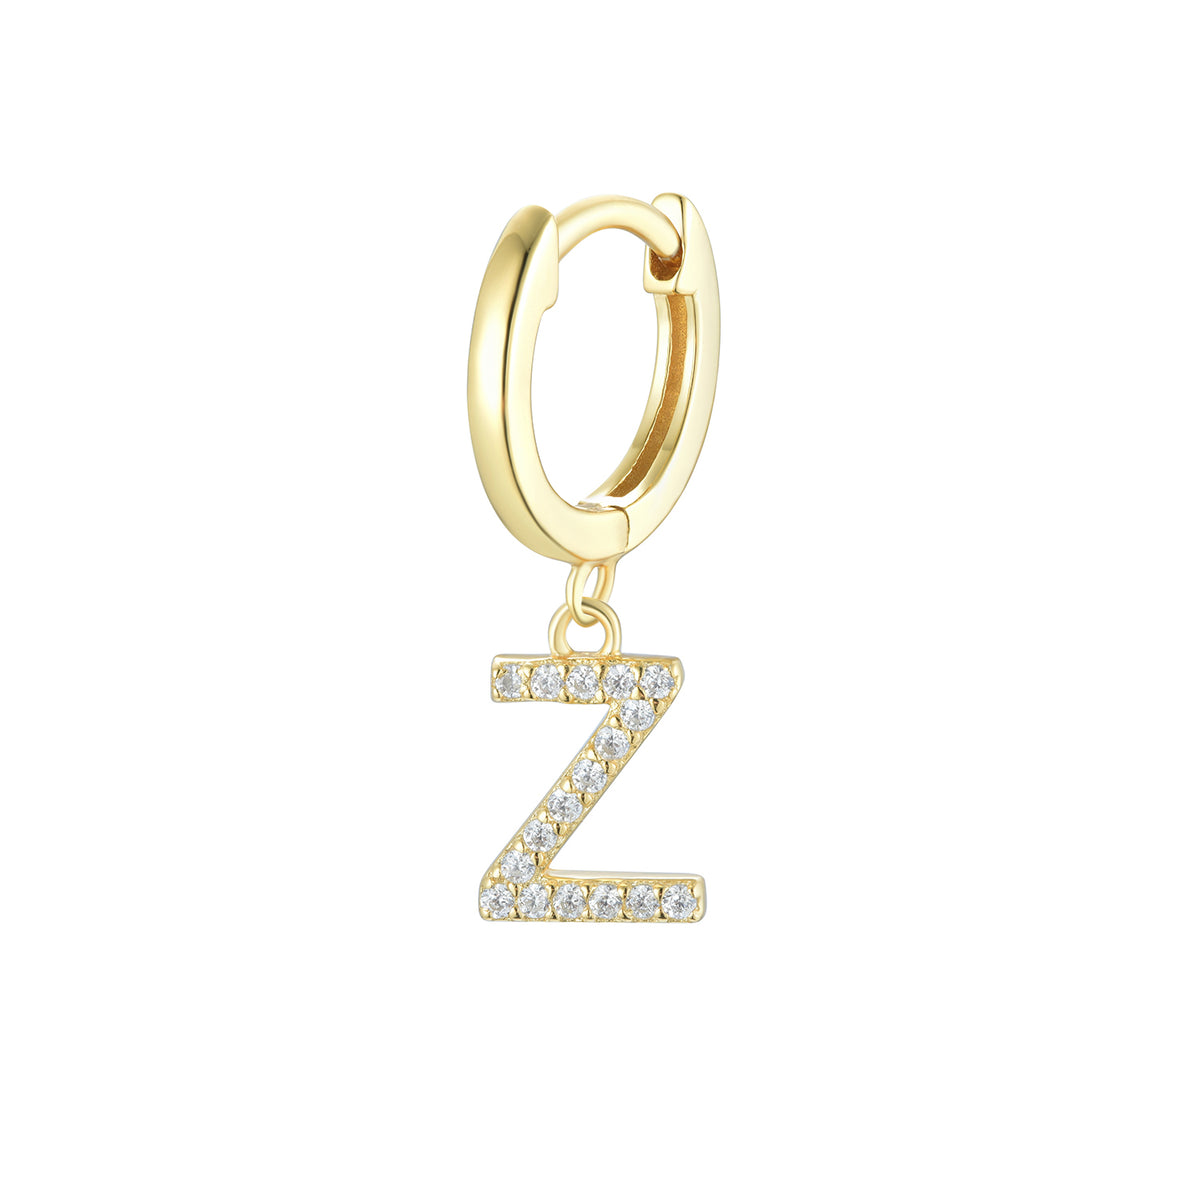 Magna | Z Letter Single Earring | White CZ | 18K Gold Plated 925 Silver